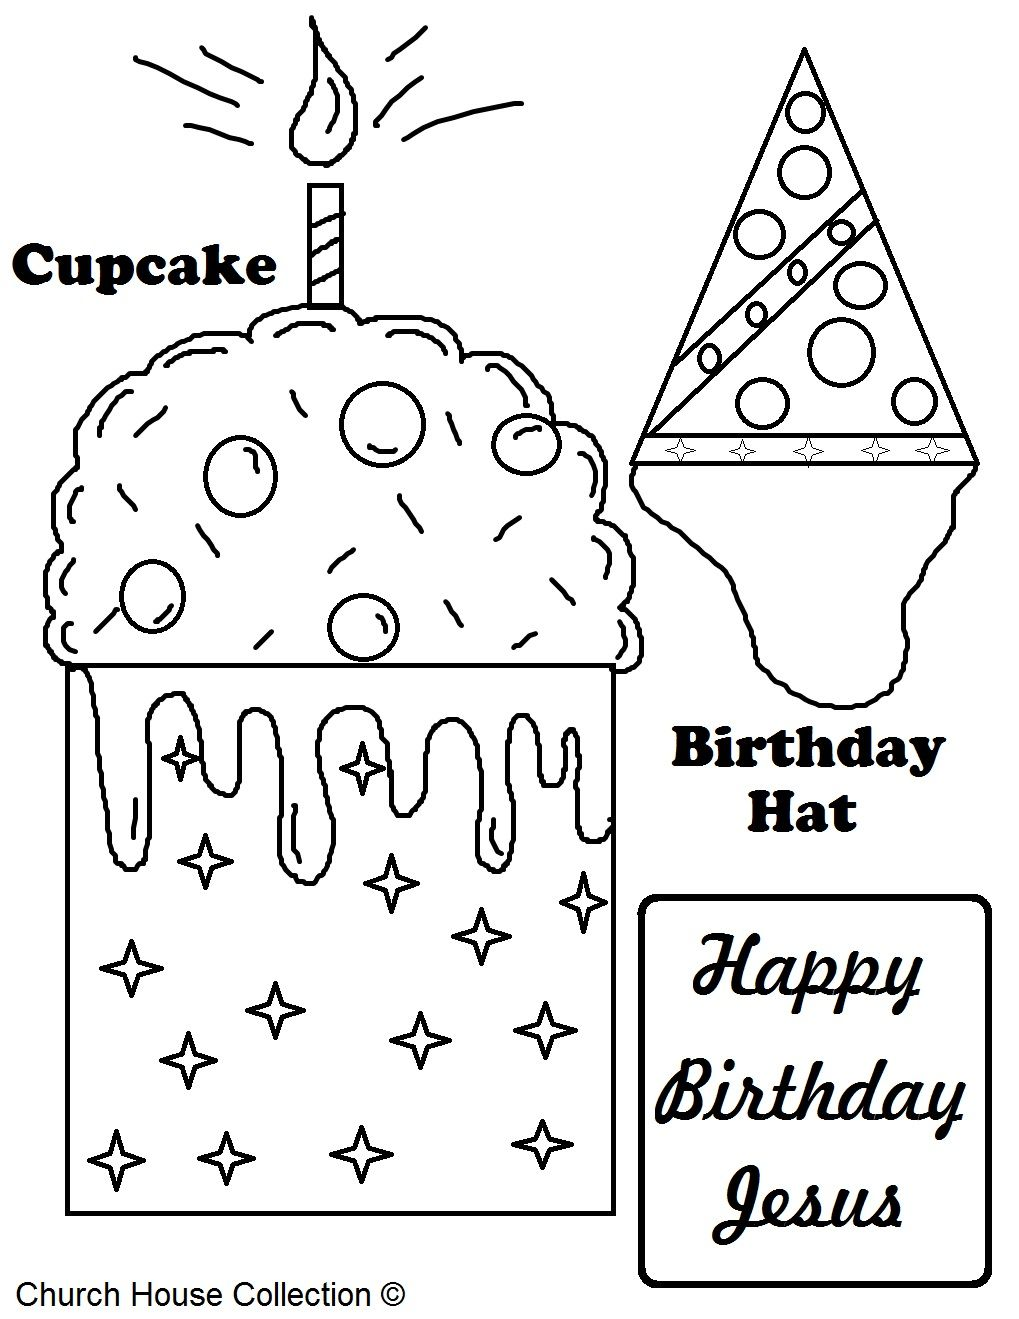 A free printable Happy Birthday